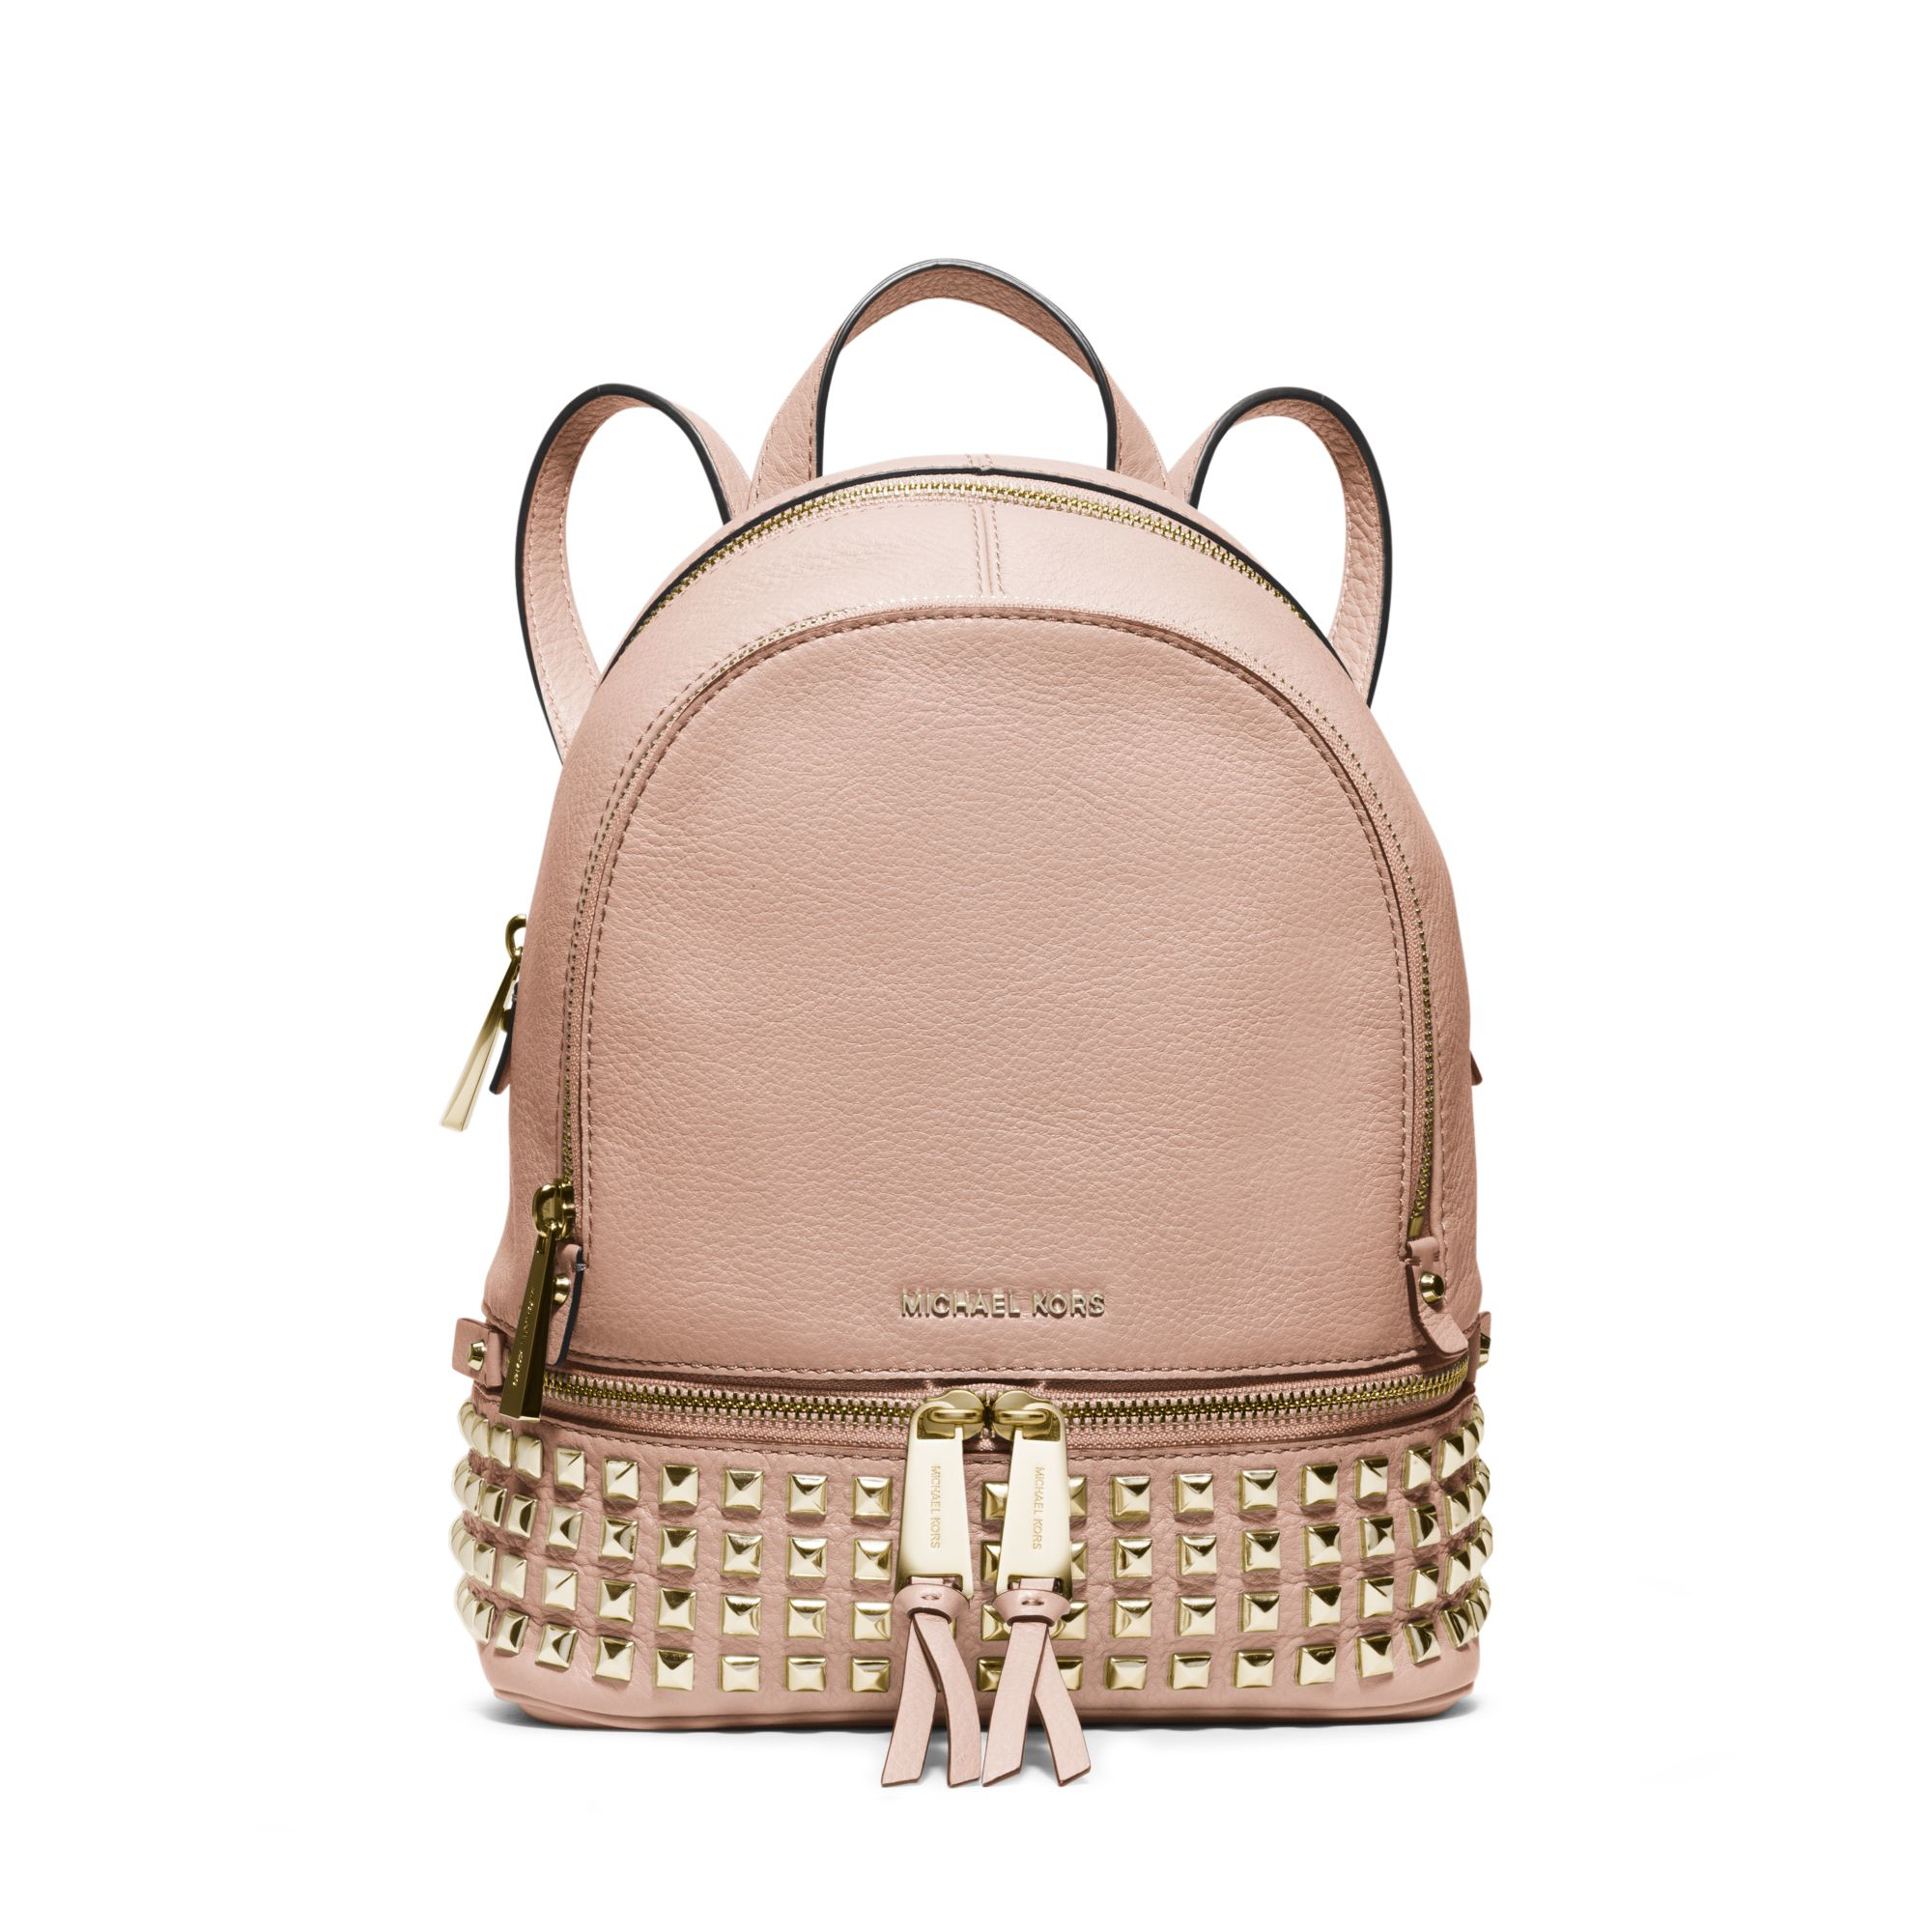 d90ce14fc8 Michael Kors Rhea Small Backpack Soft Pink- Fenix Toulouse Handball